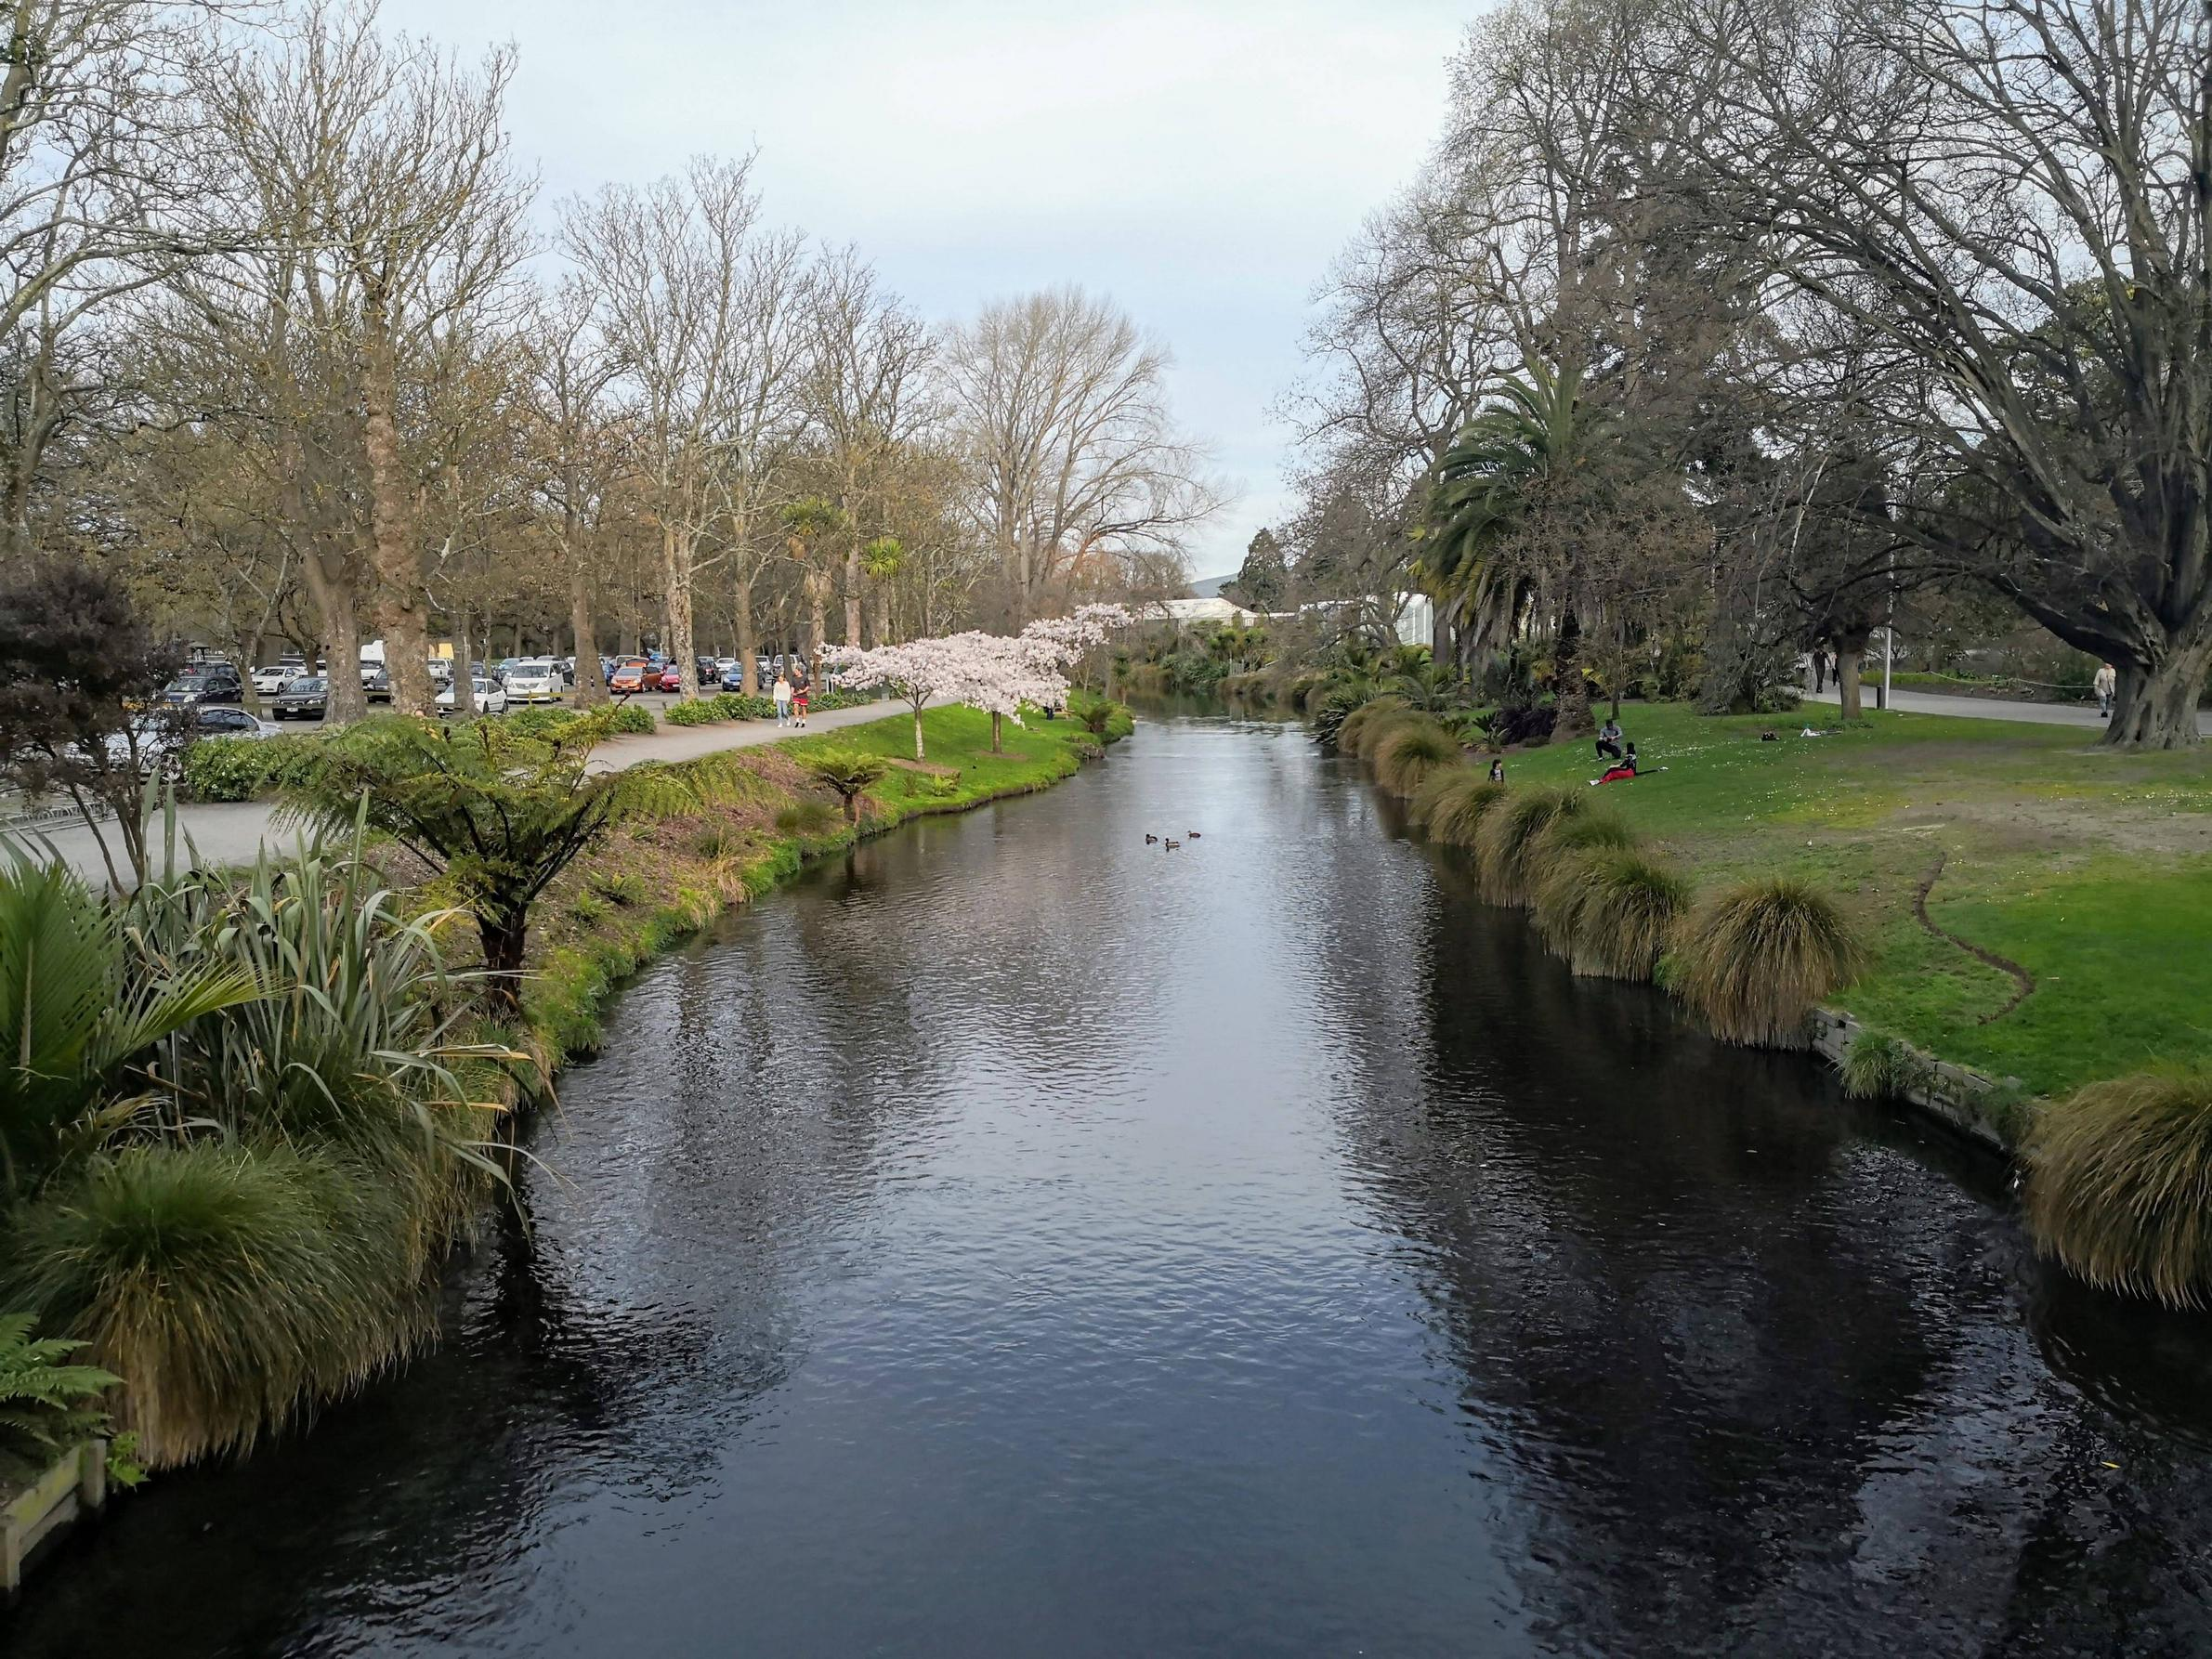 The Avon River with the Christchurch Botanic Gardens on the right and Hagley Park on the left.